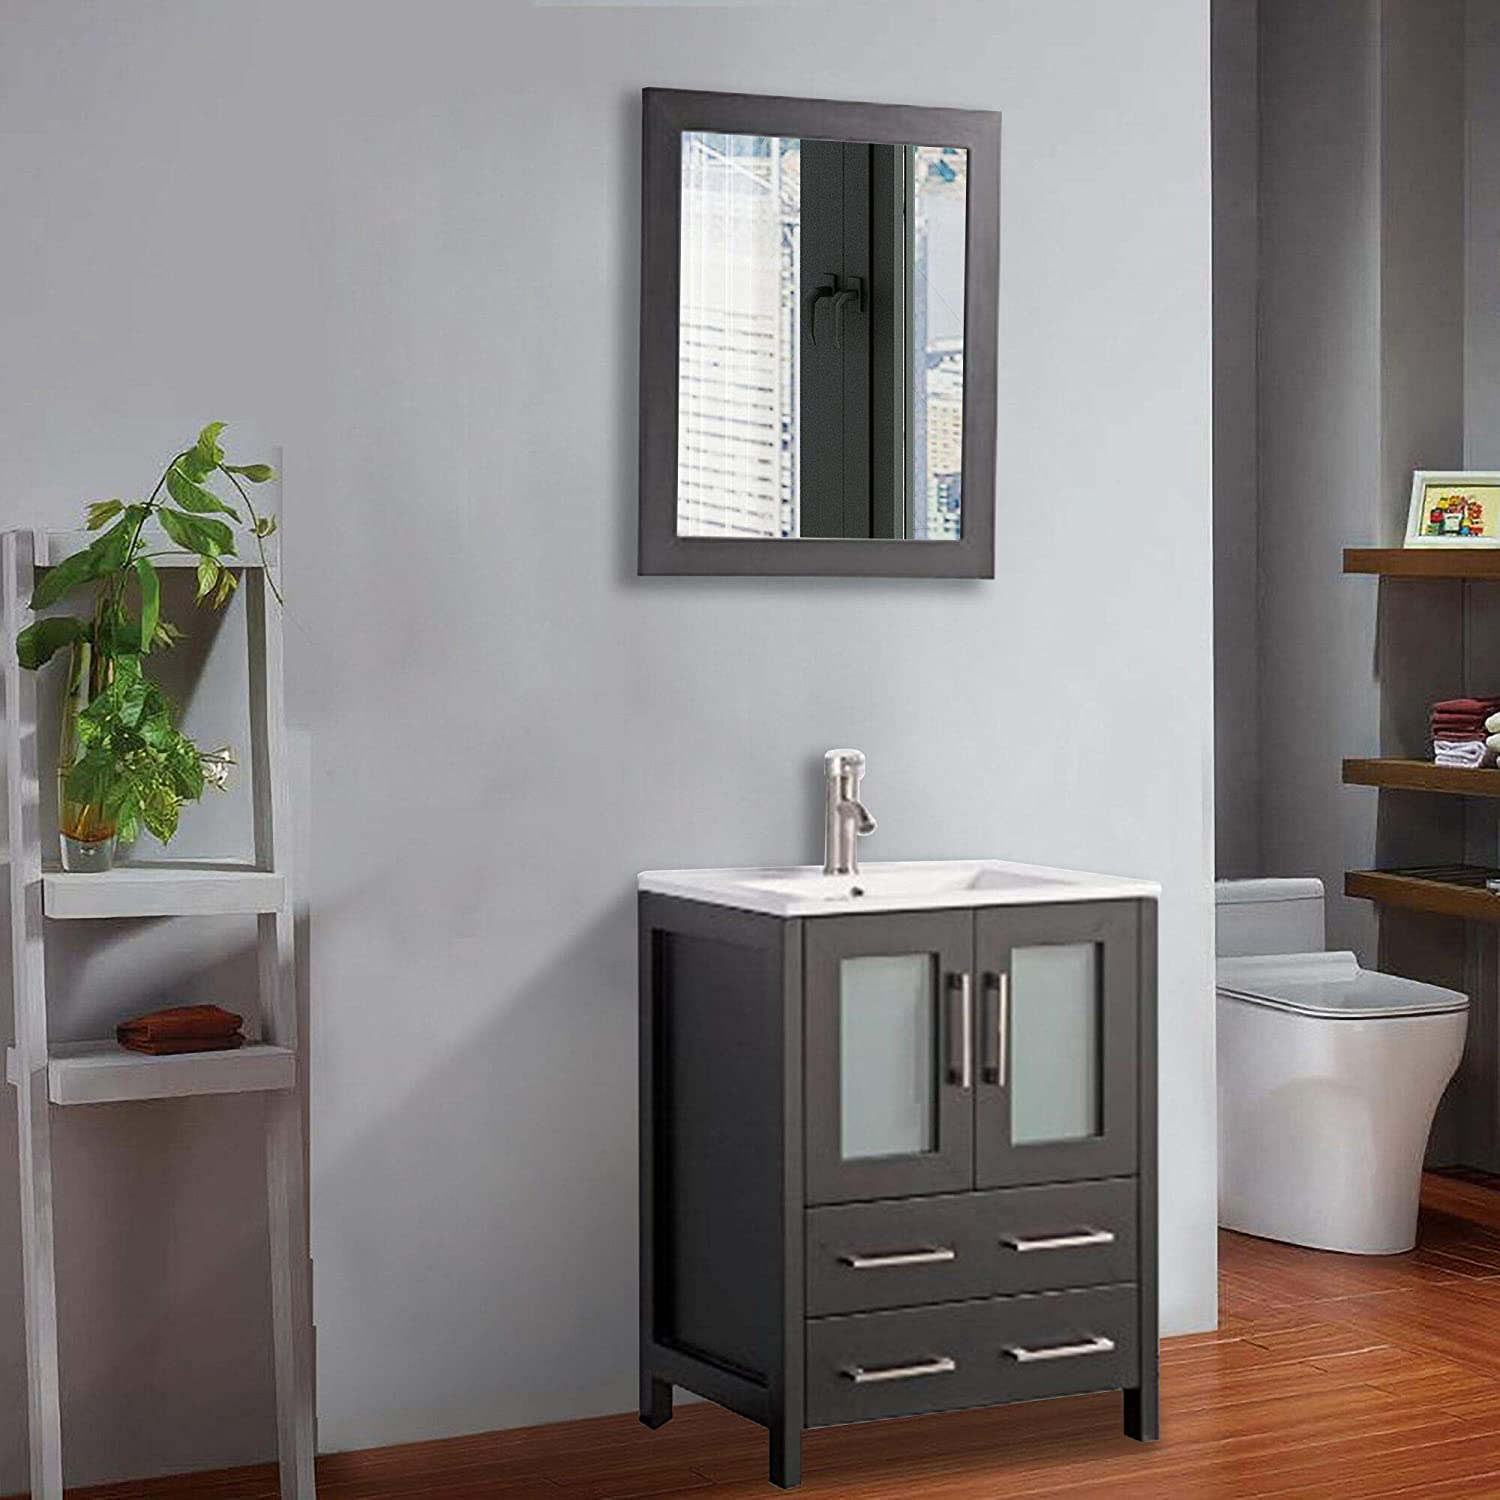 Vanity Art 24 inch Single Sink Bathroom Vanity Compact Set 2 Large Folding Doors 1 Shelf Ceramic Top Bathroom Cabinet with Free Mirror Espresso – VA3024-E